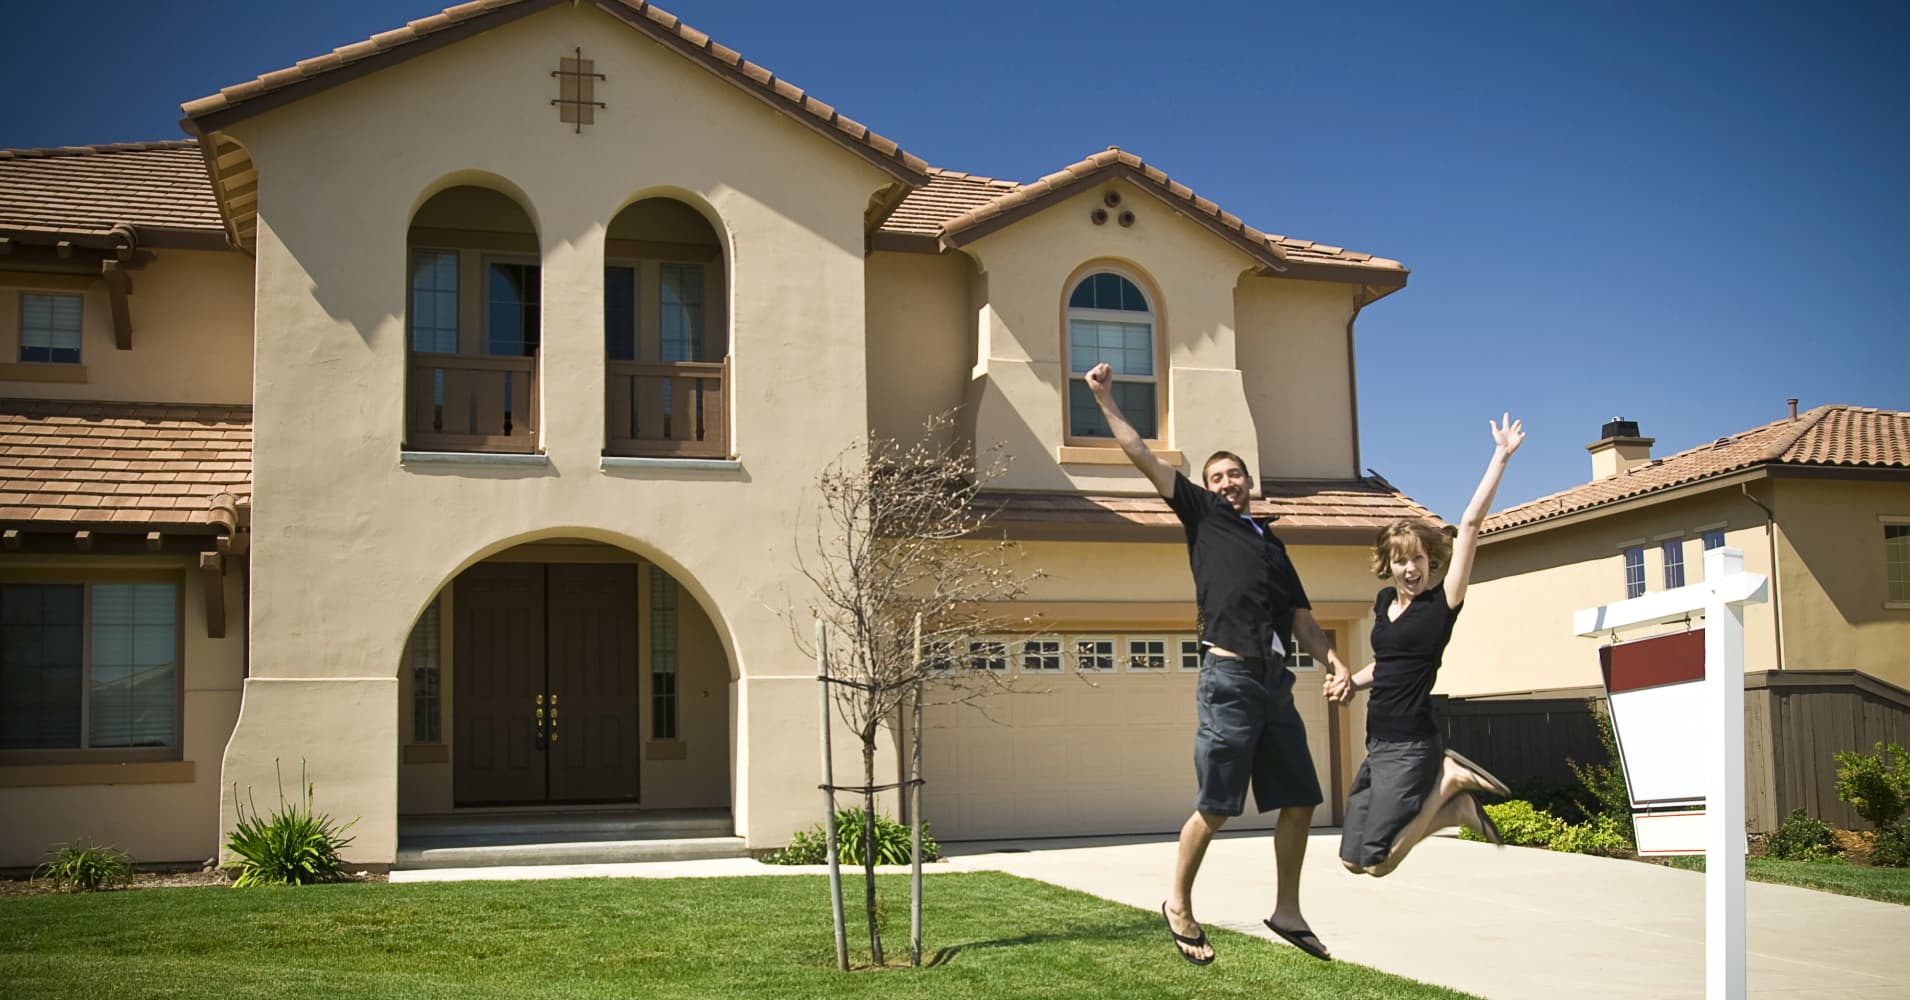 Best Markets For First Time Home Buyers